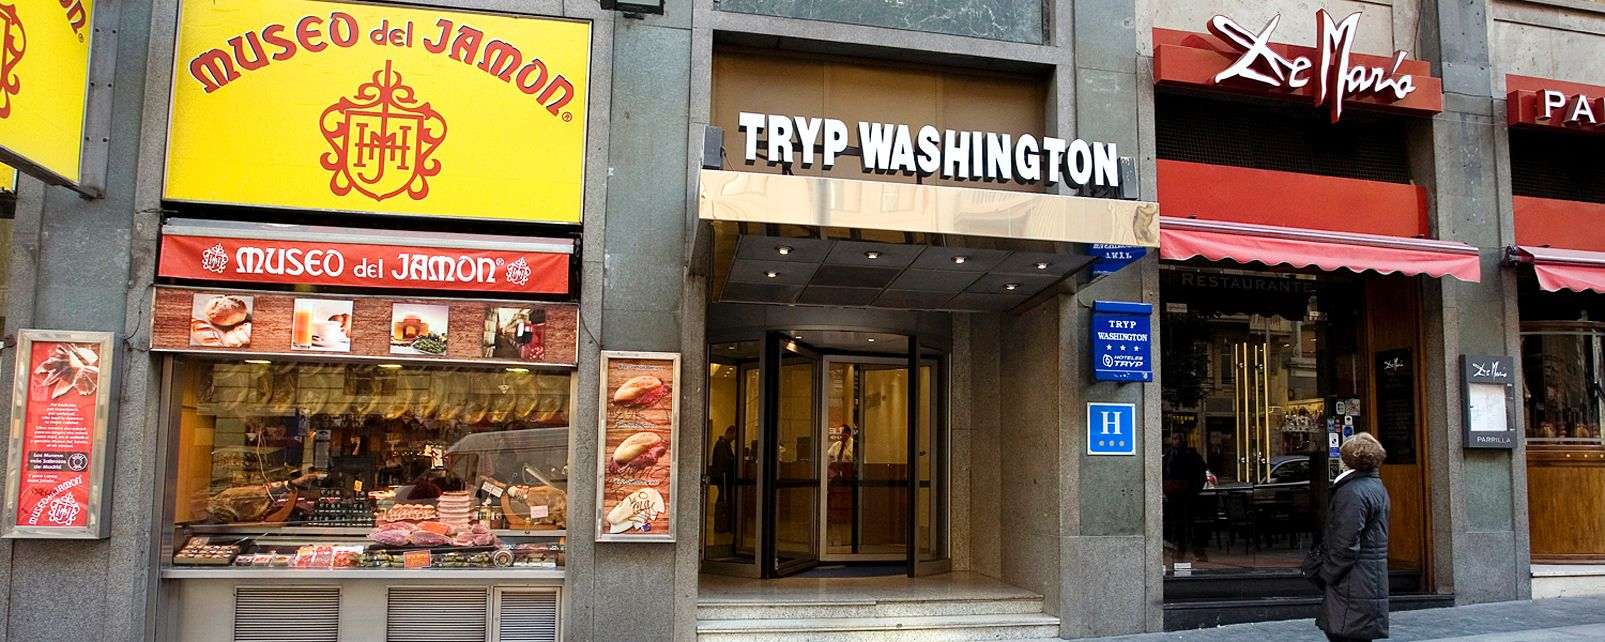 Hotel Tryp Washington